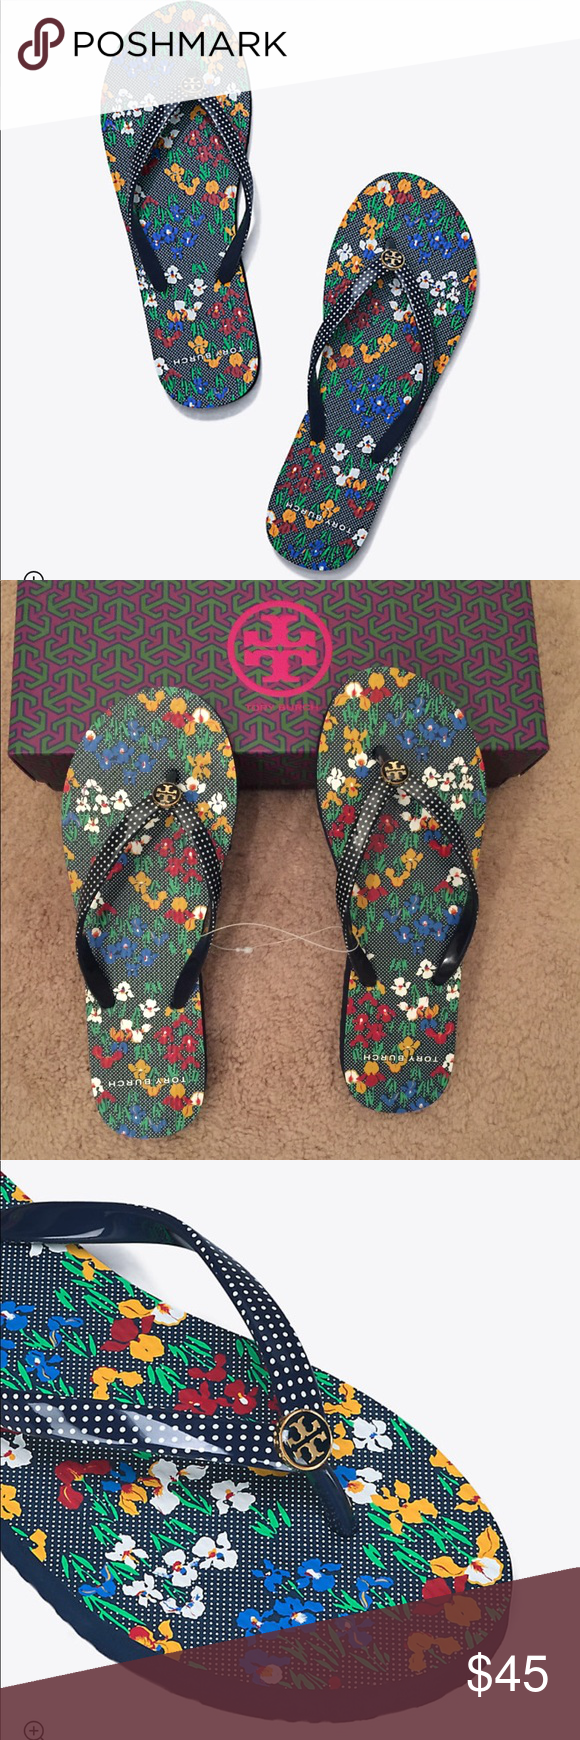 ba49187123b5 Tory Burch Iris Garden Printed Thin Flip Flop 💯% authentic Tory Burch Iris  Garden